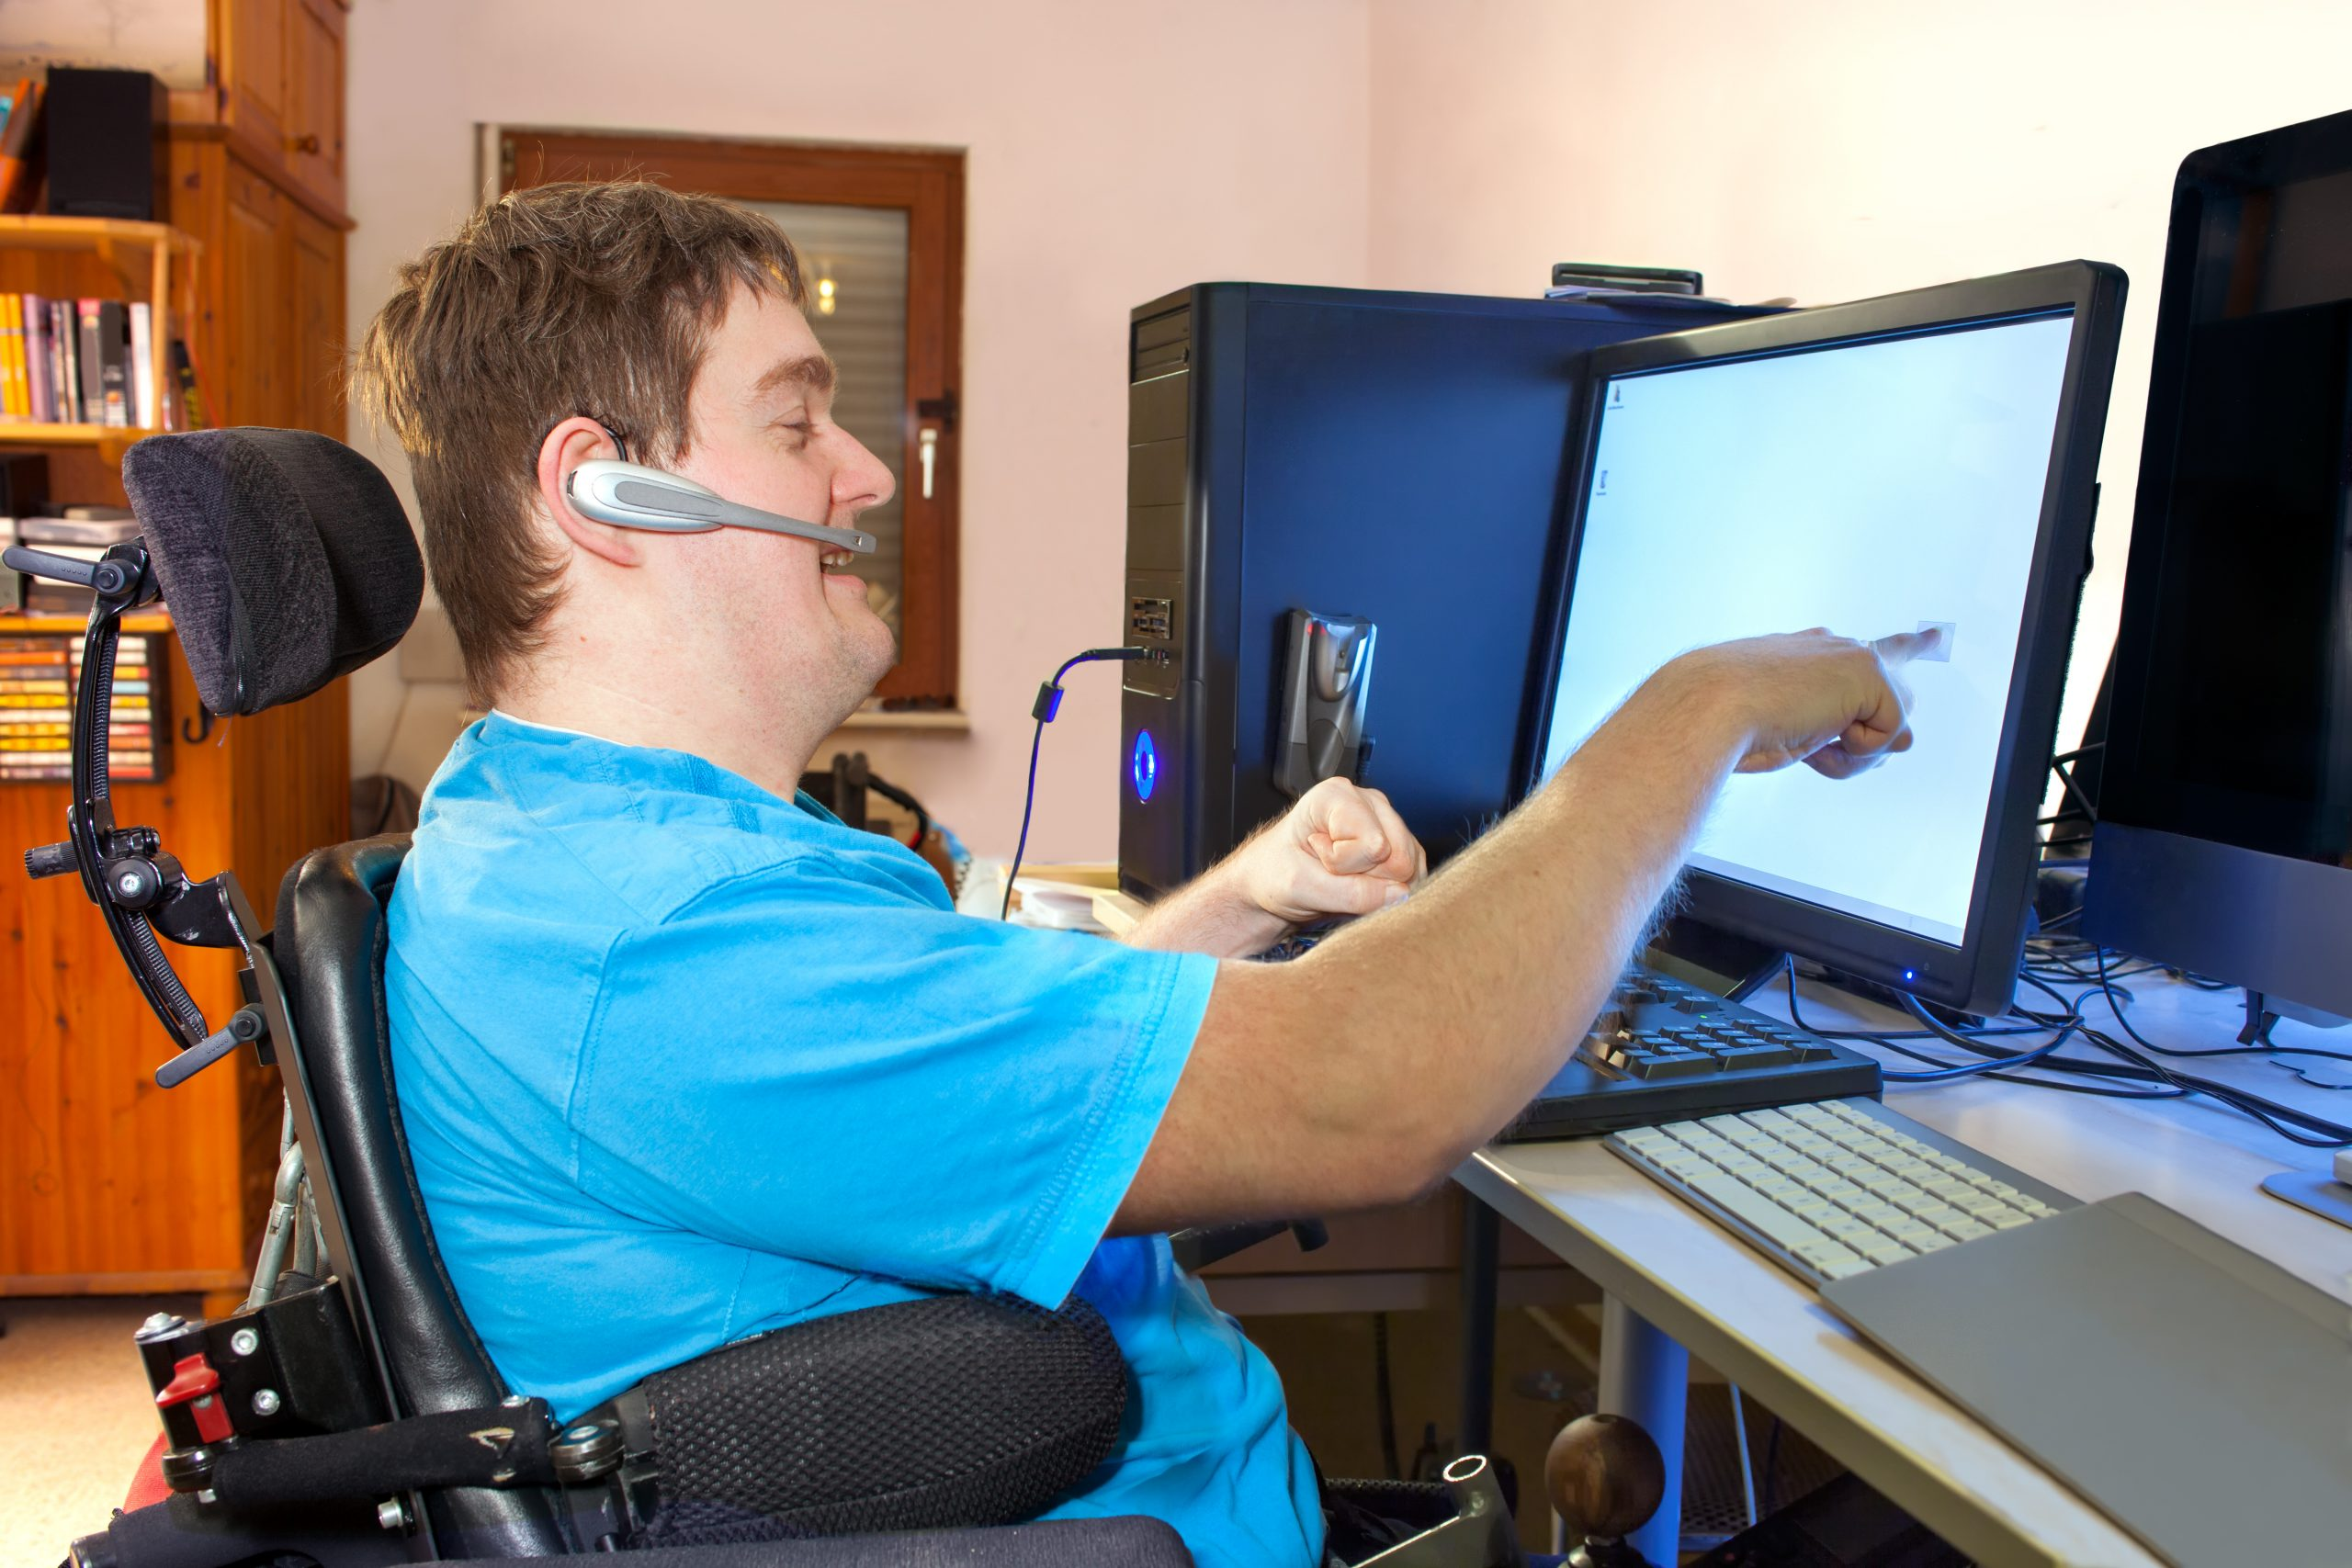 Disabled student working on computer